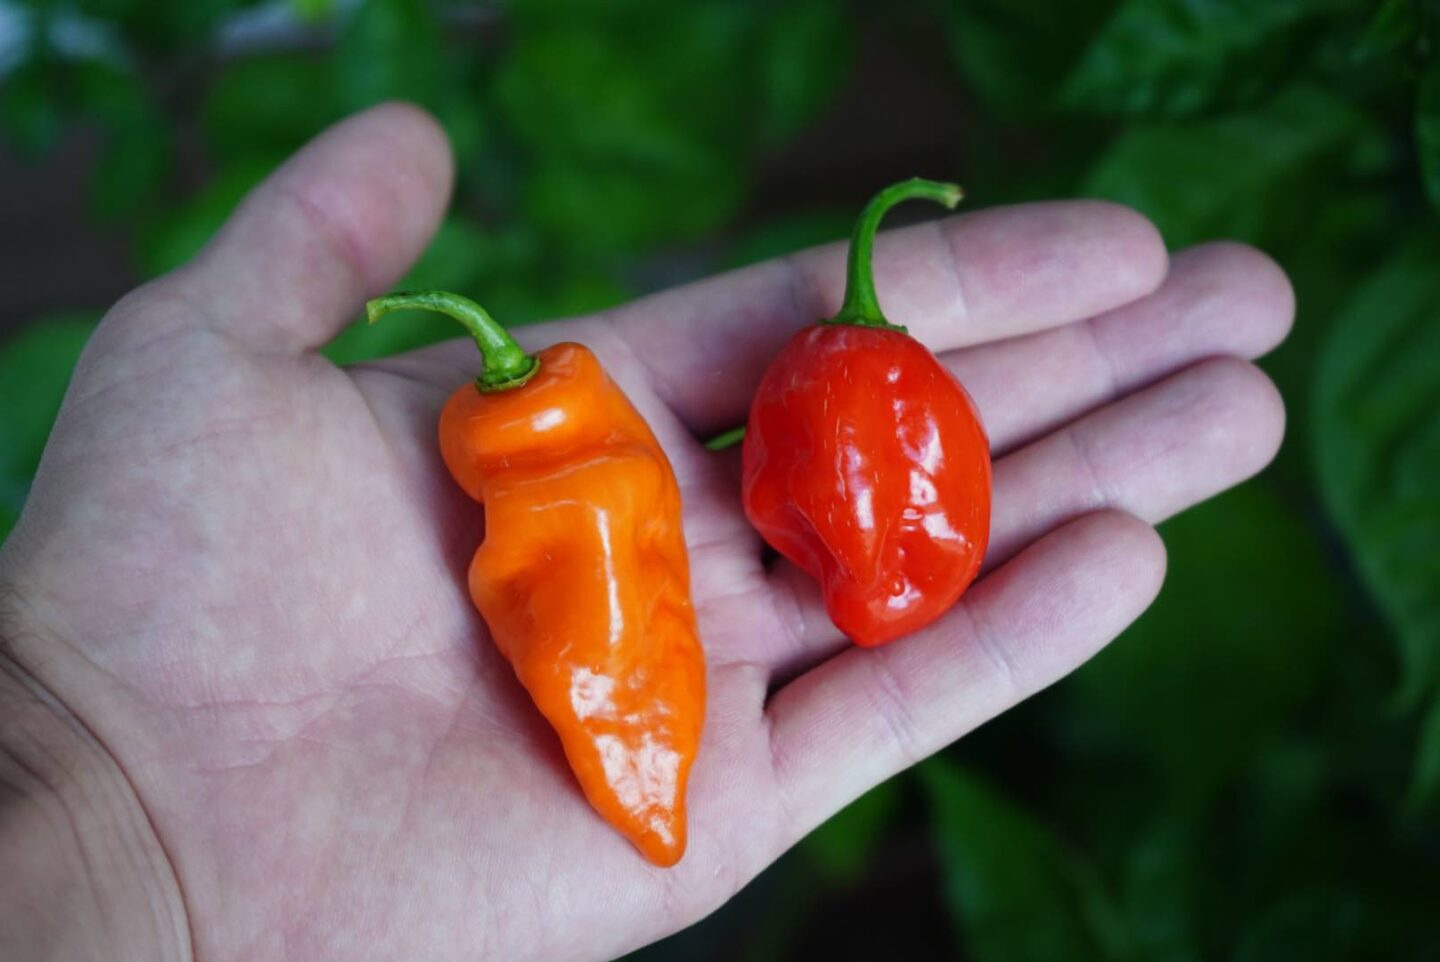 Habanada Pepper and Habanero